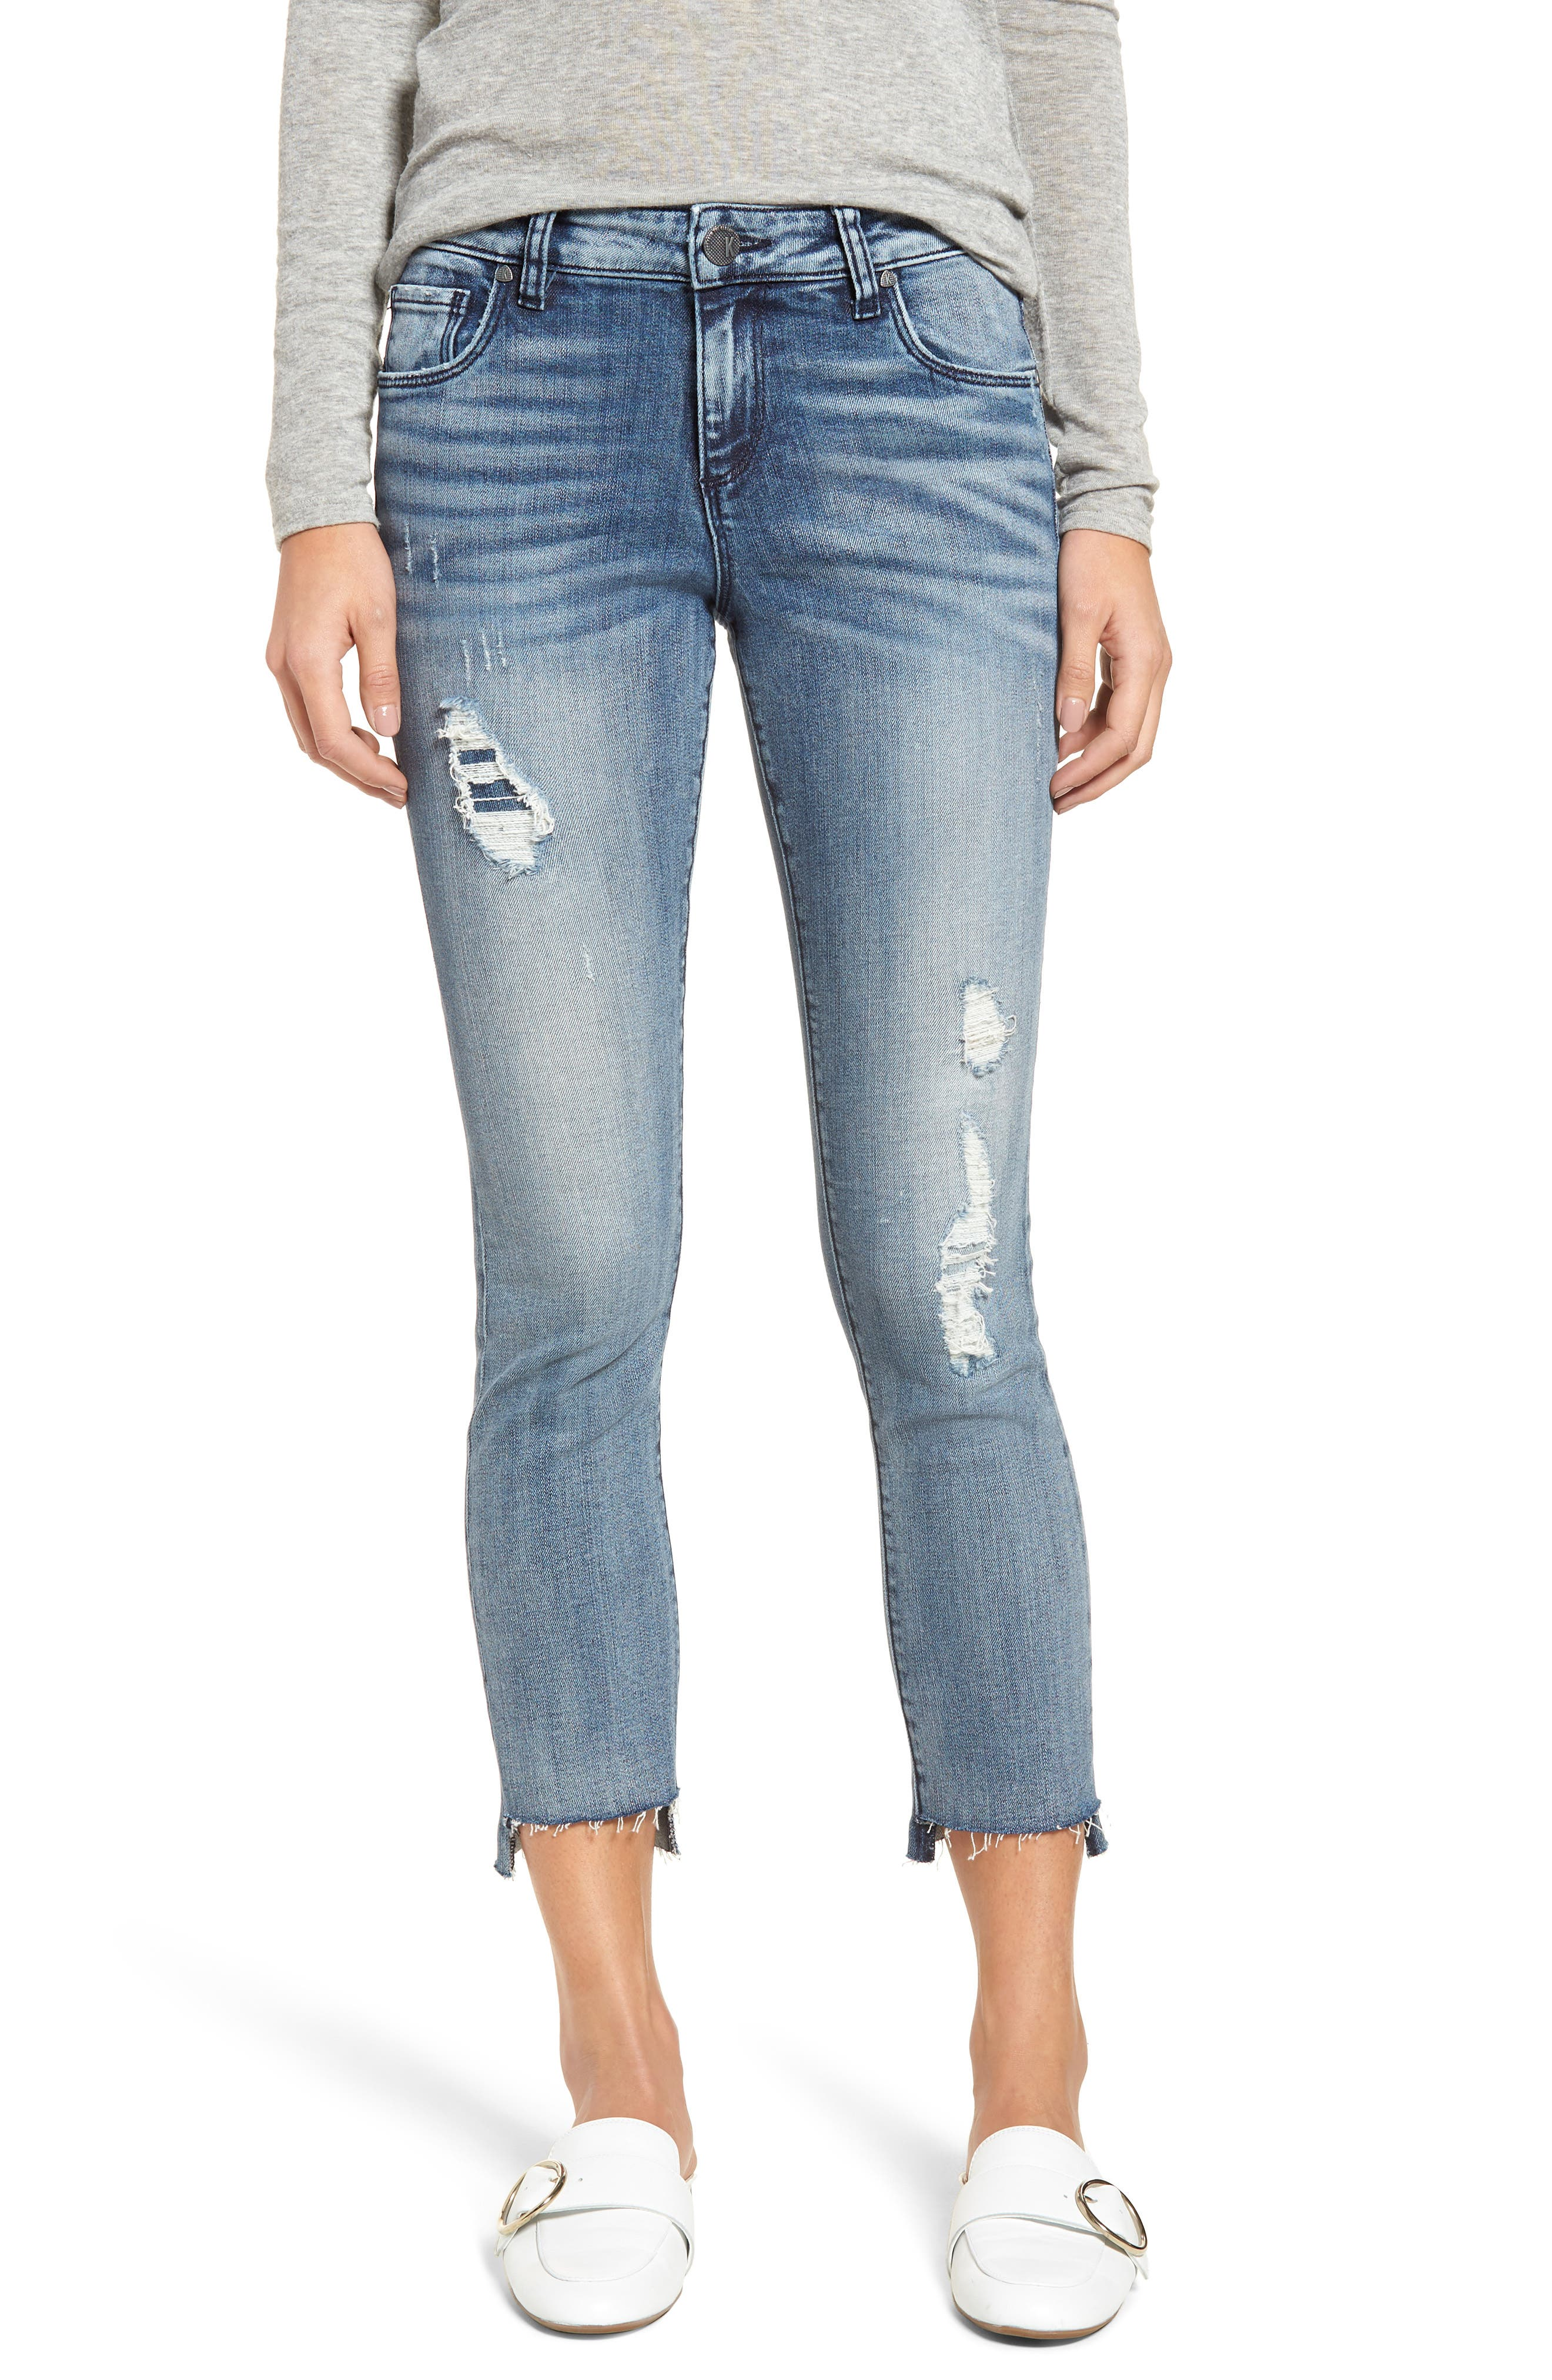 KUT FROM THE KLOTH REESE RIPPED ANKLE SLIM JEANS